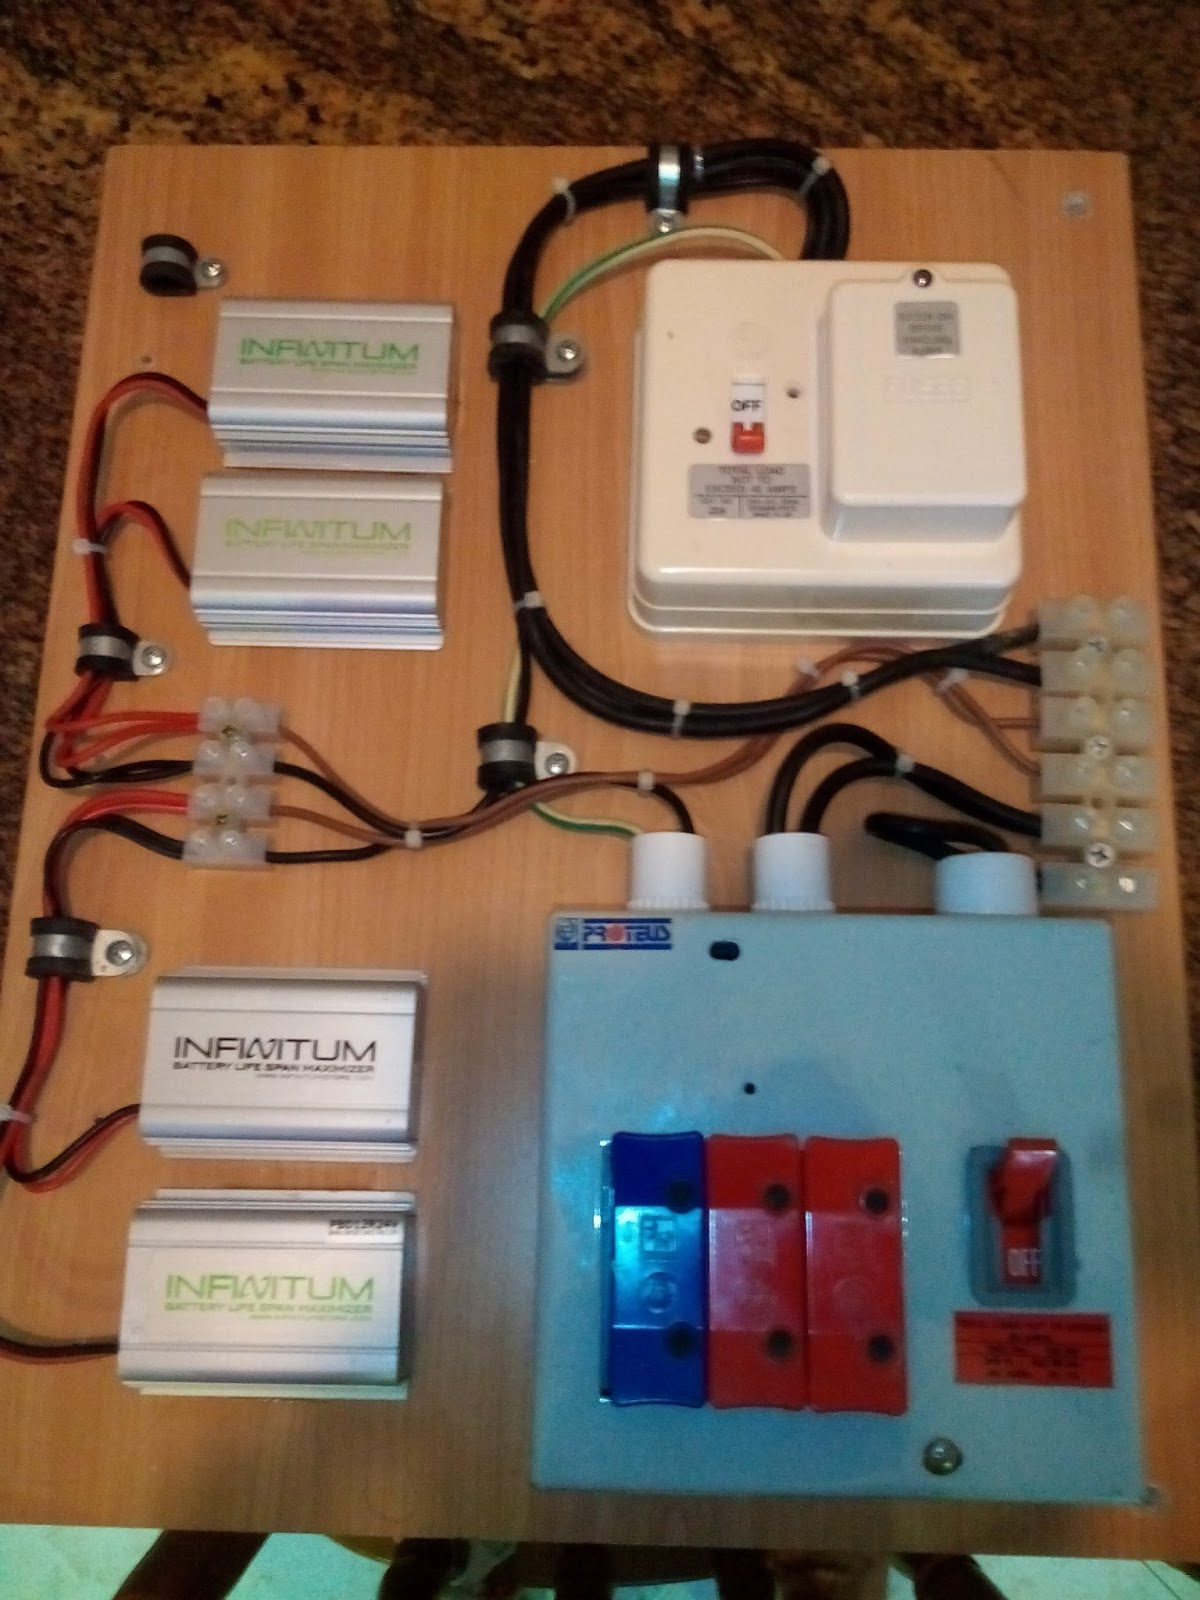 Battery Desulfators Brian Ellul Blog Requirement For The Proposed Desulfator With Charger Circuit Have Been Installed Just Against Outside Of Box